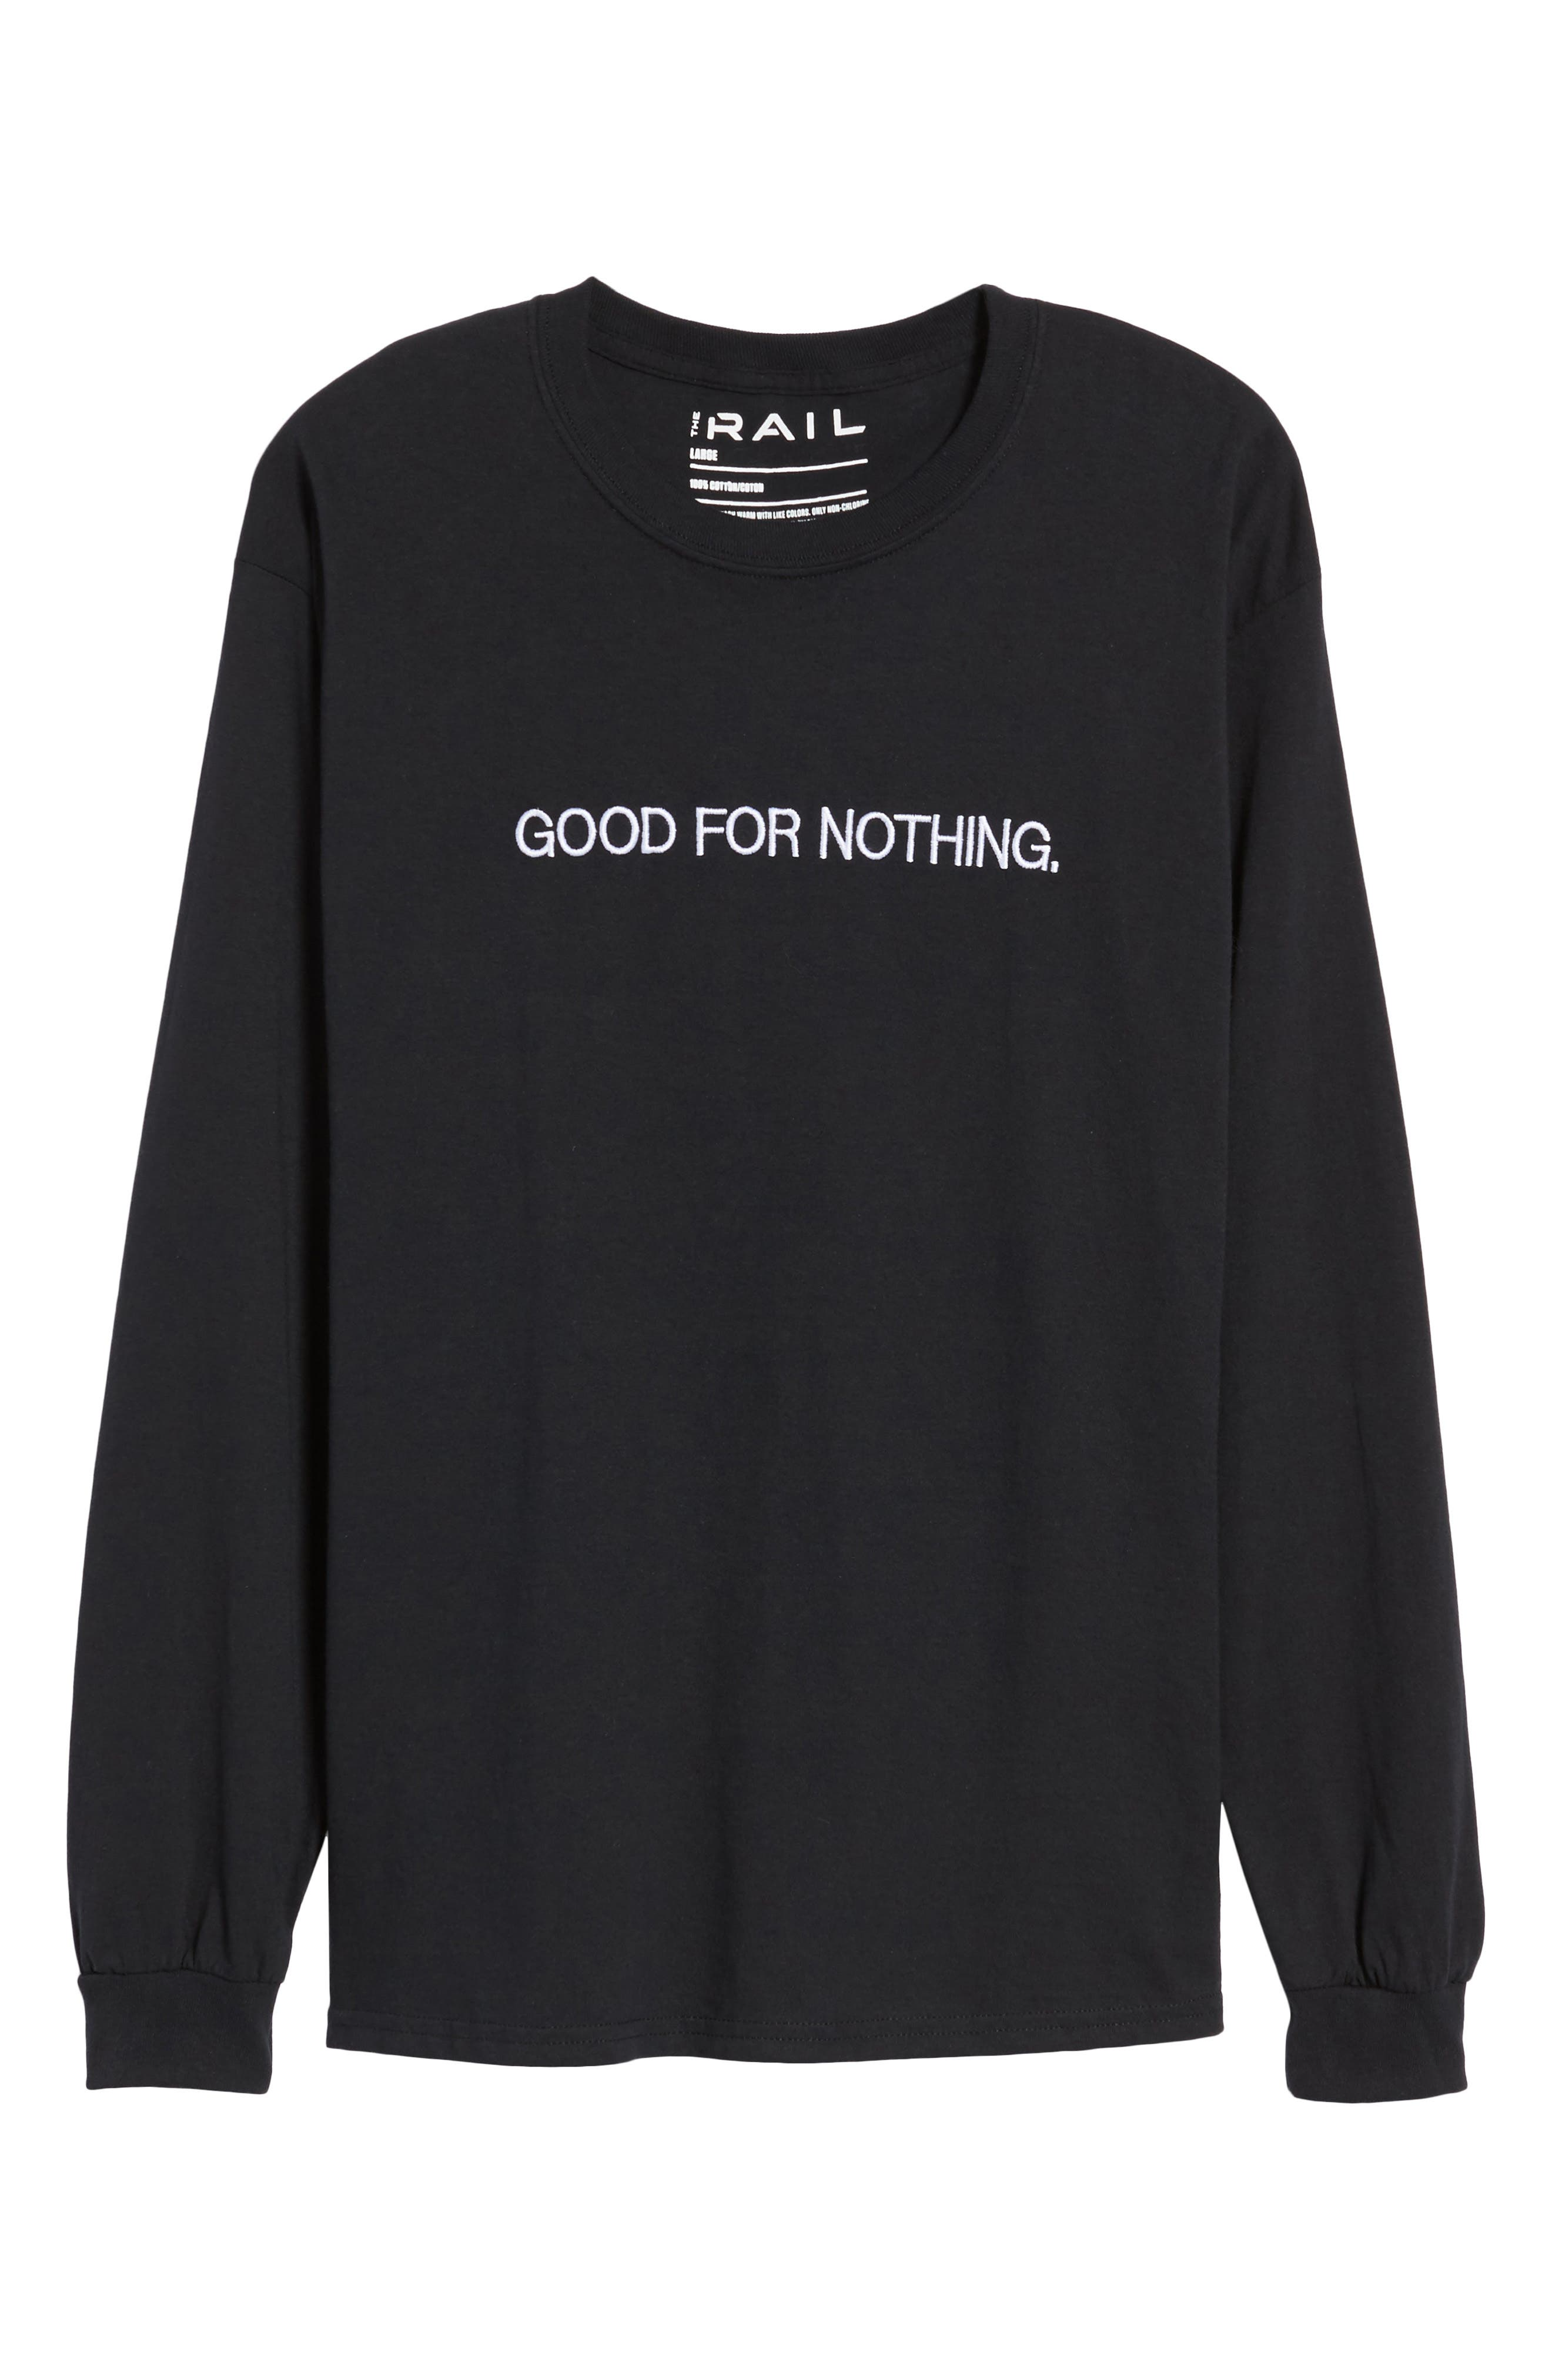 Good for Nothing Embroidered T-Shirt,                             Alternate thumbnail 6, color,                             Black Good For